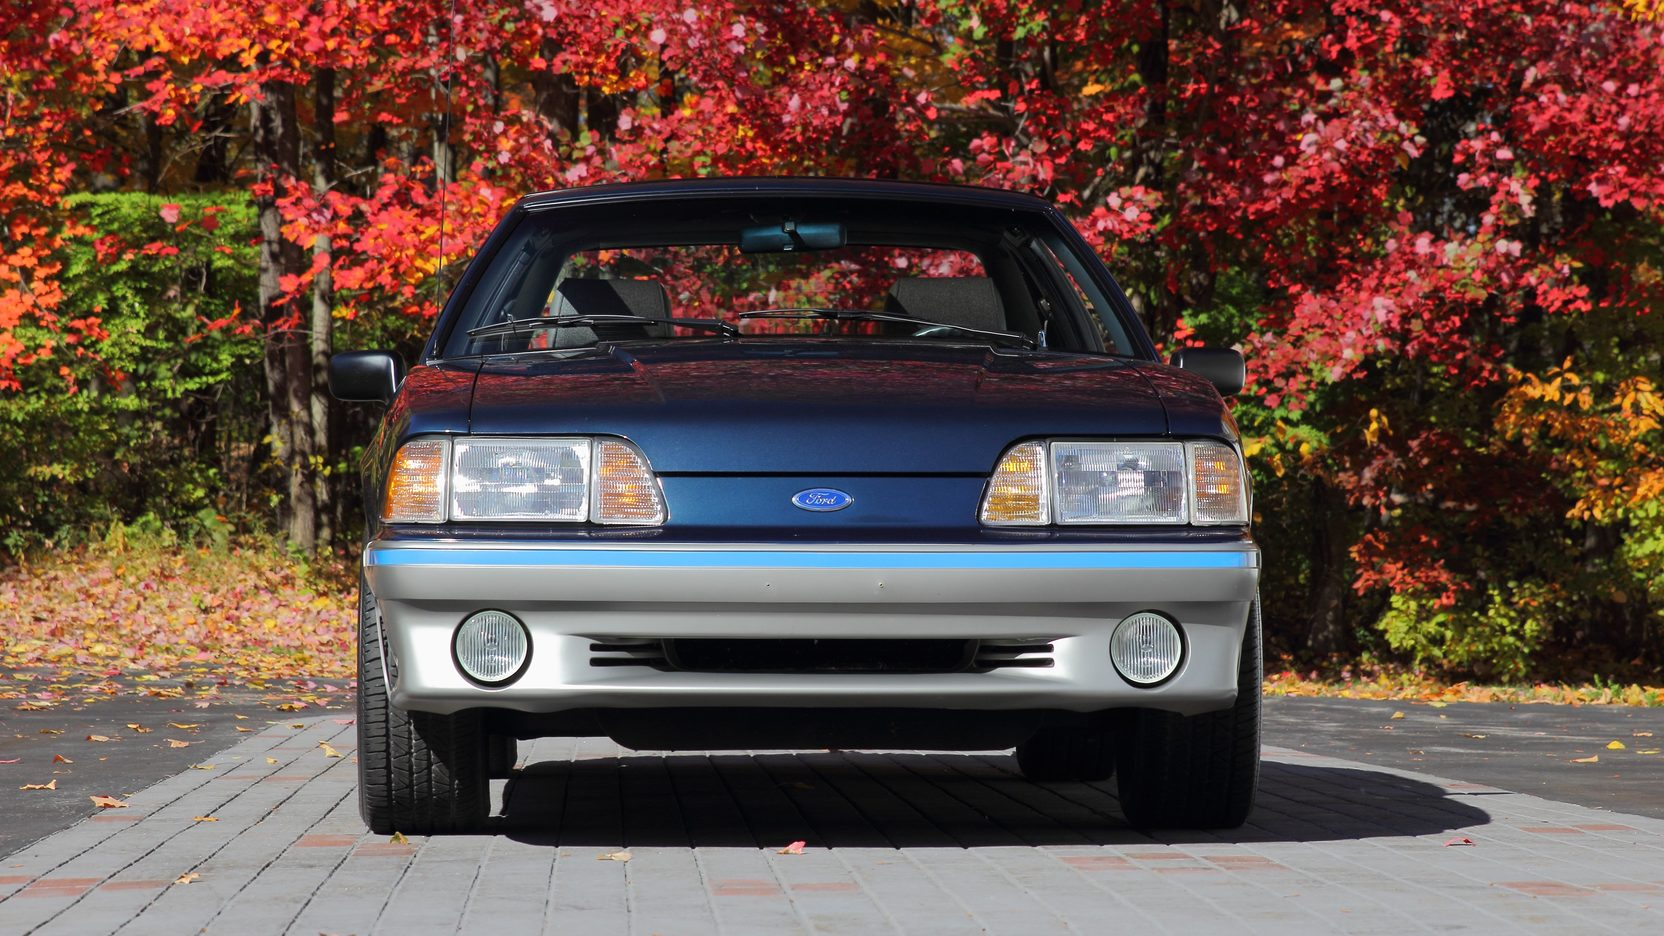 1988 Ford Mustang GT front